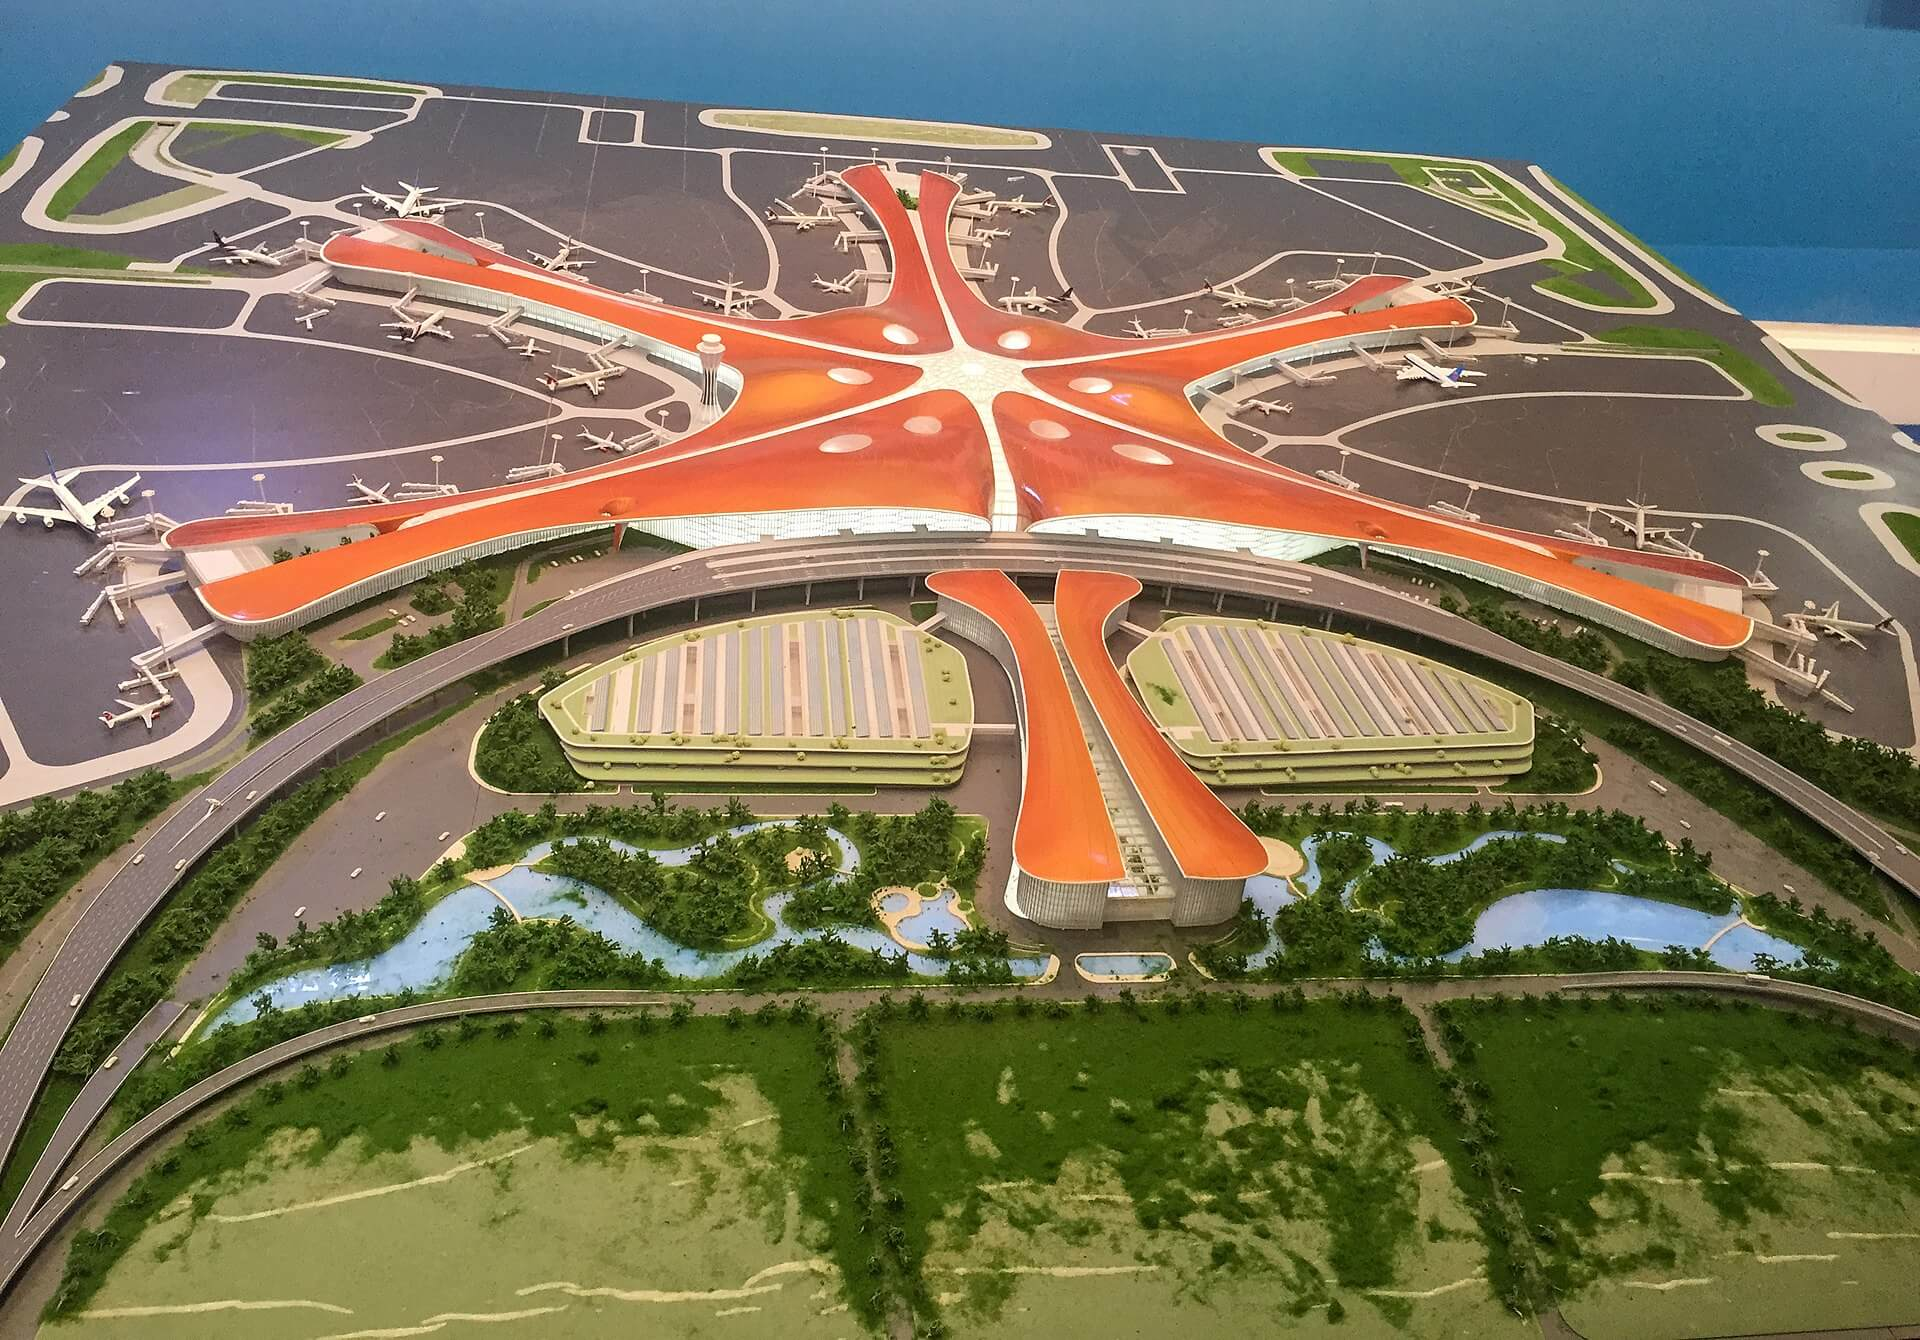 1920px-Model_of_Beijing_New_Airport_at_the_Five-Year_Achievements_Exhibition_20171015150600